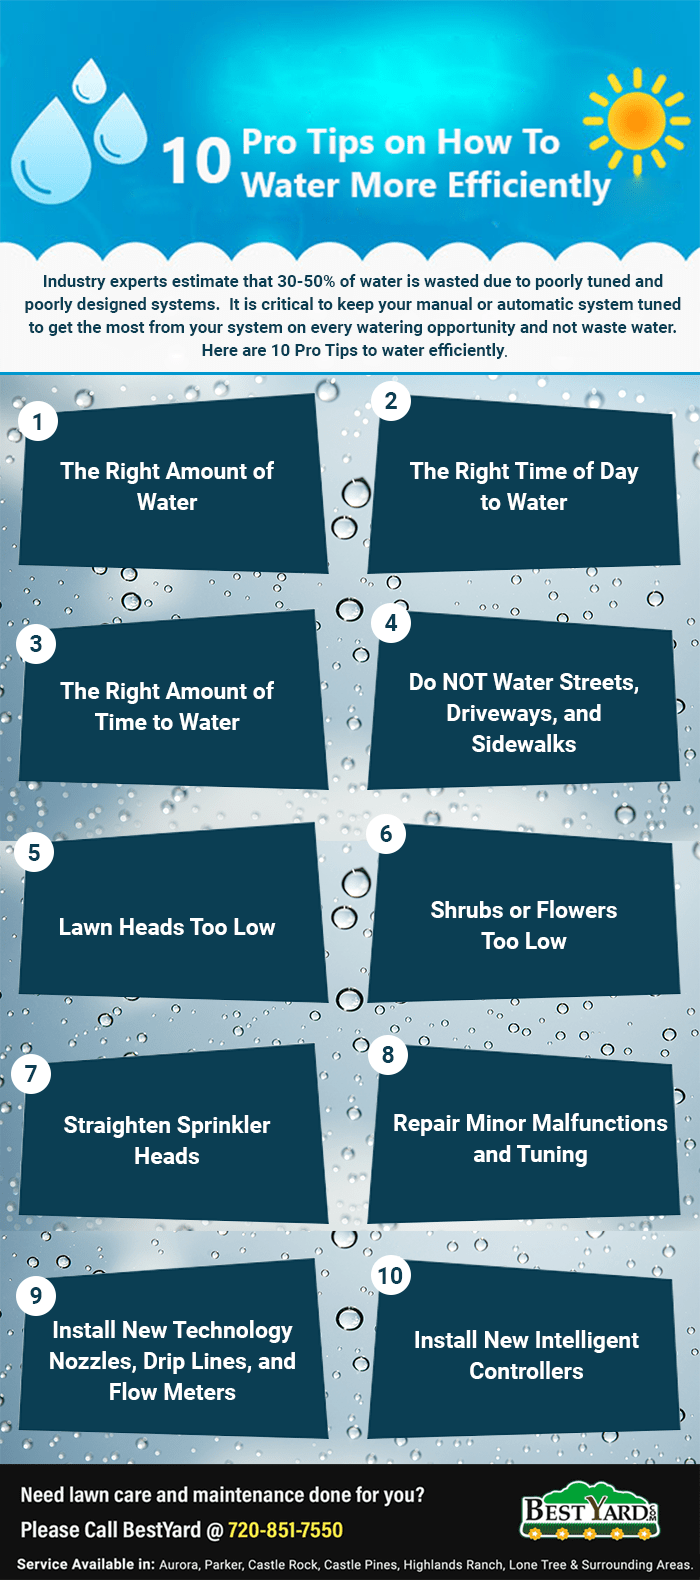 Use Water More Efficiently